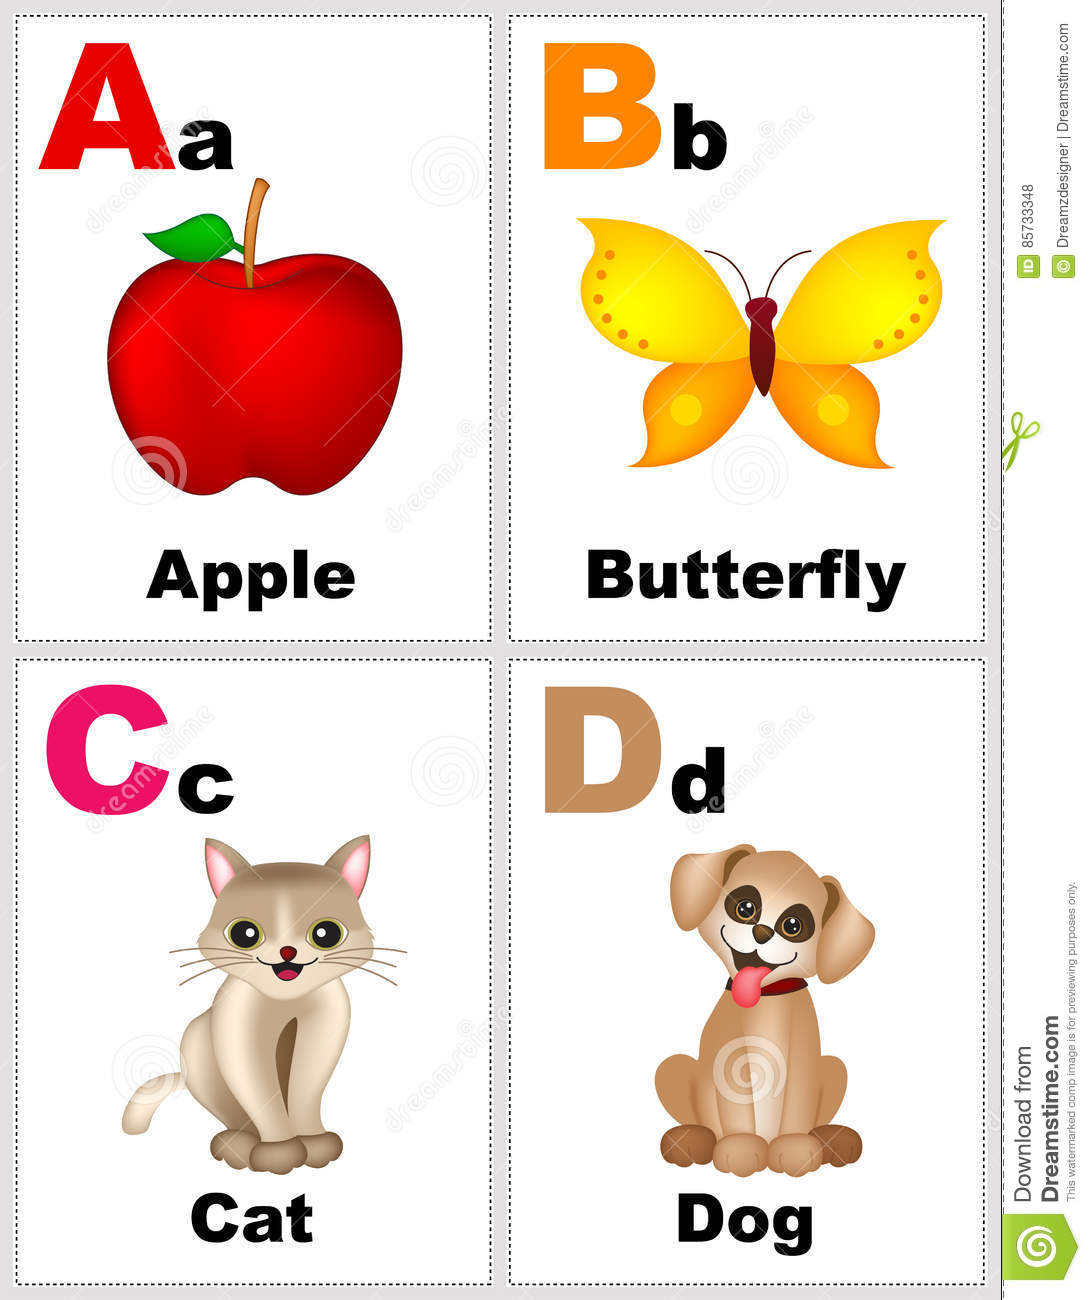 graphic regarding Printable Alphabet Flash Cards named Alphabet flashcards inventory example. Instance of